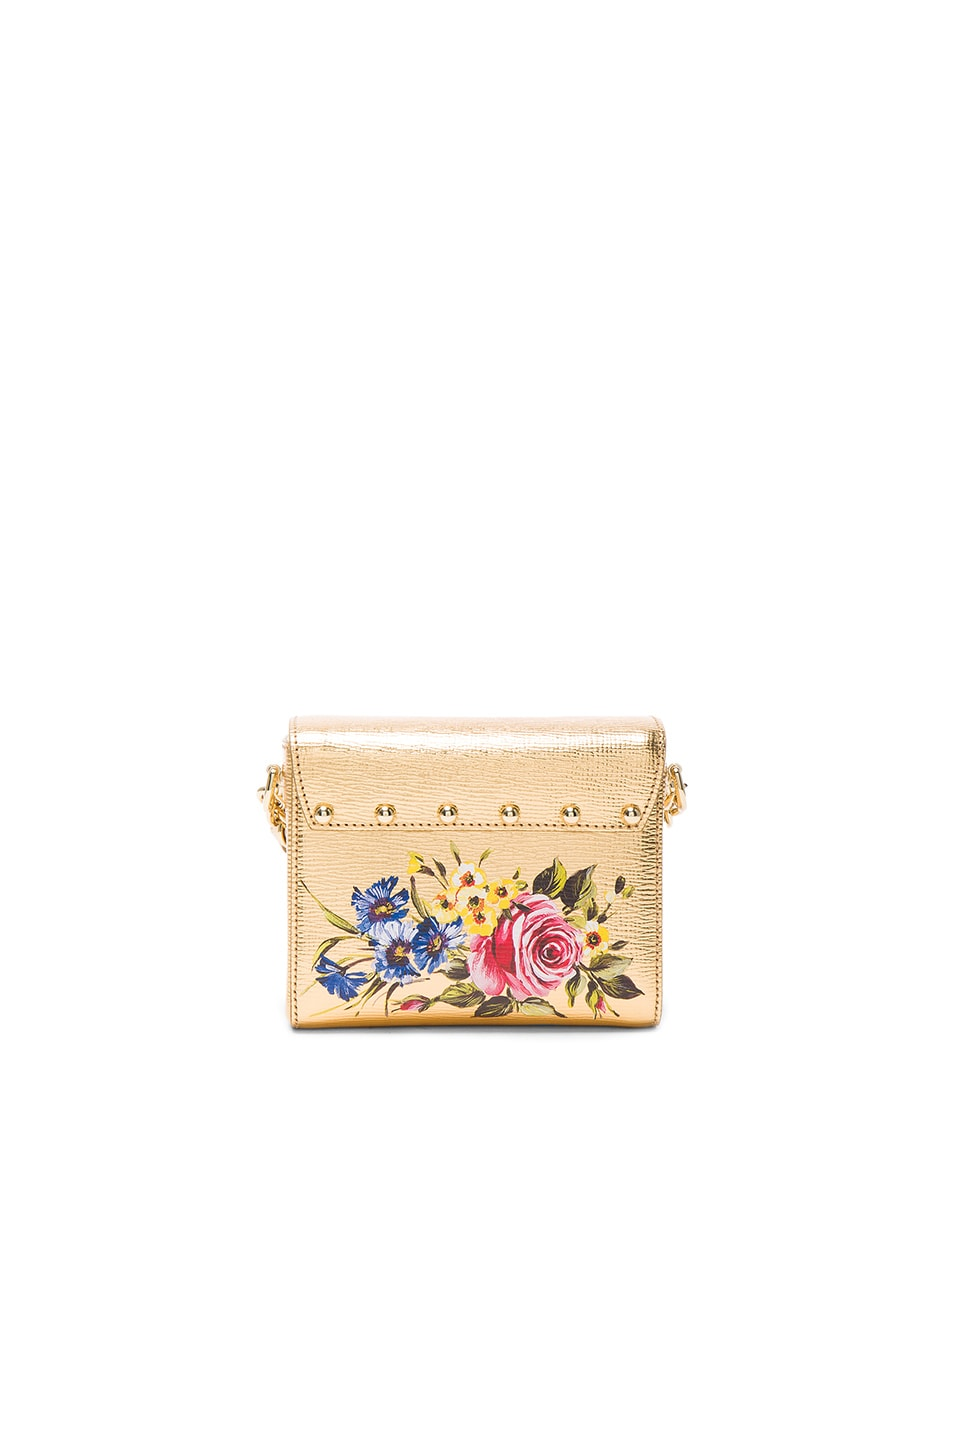 Image 2 of Dolce & Gabbana Soft Square Bag in Gold & Multicolor